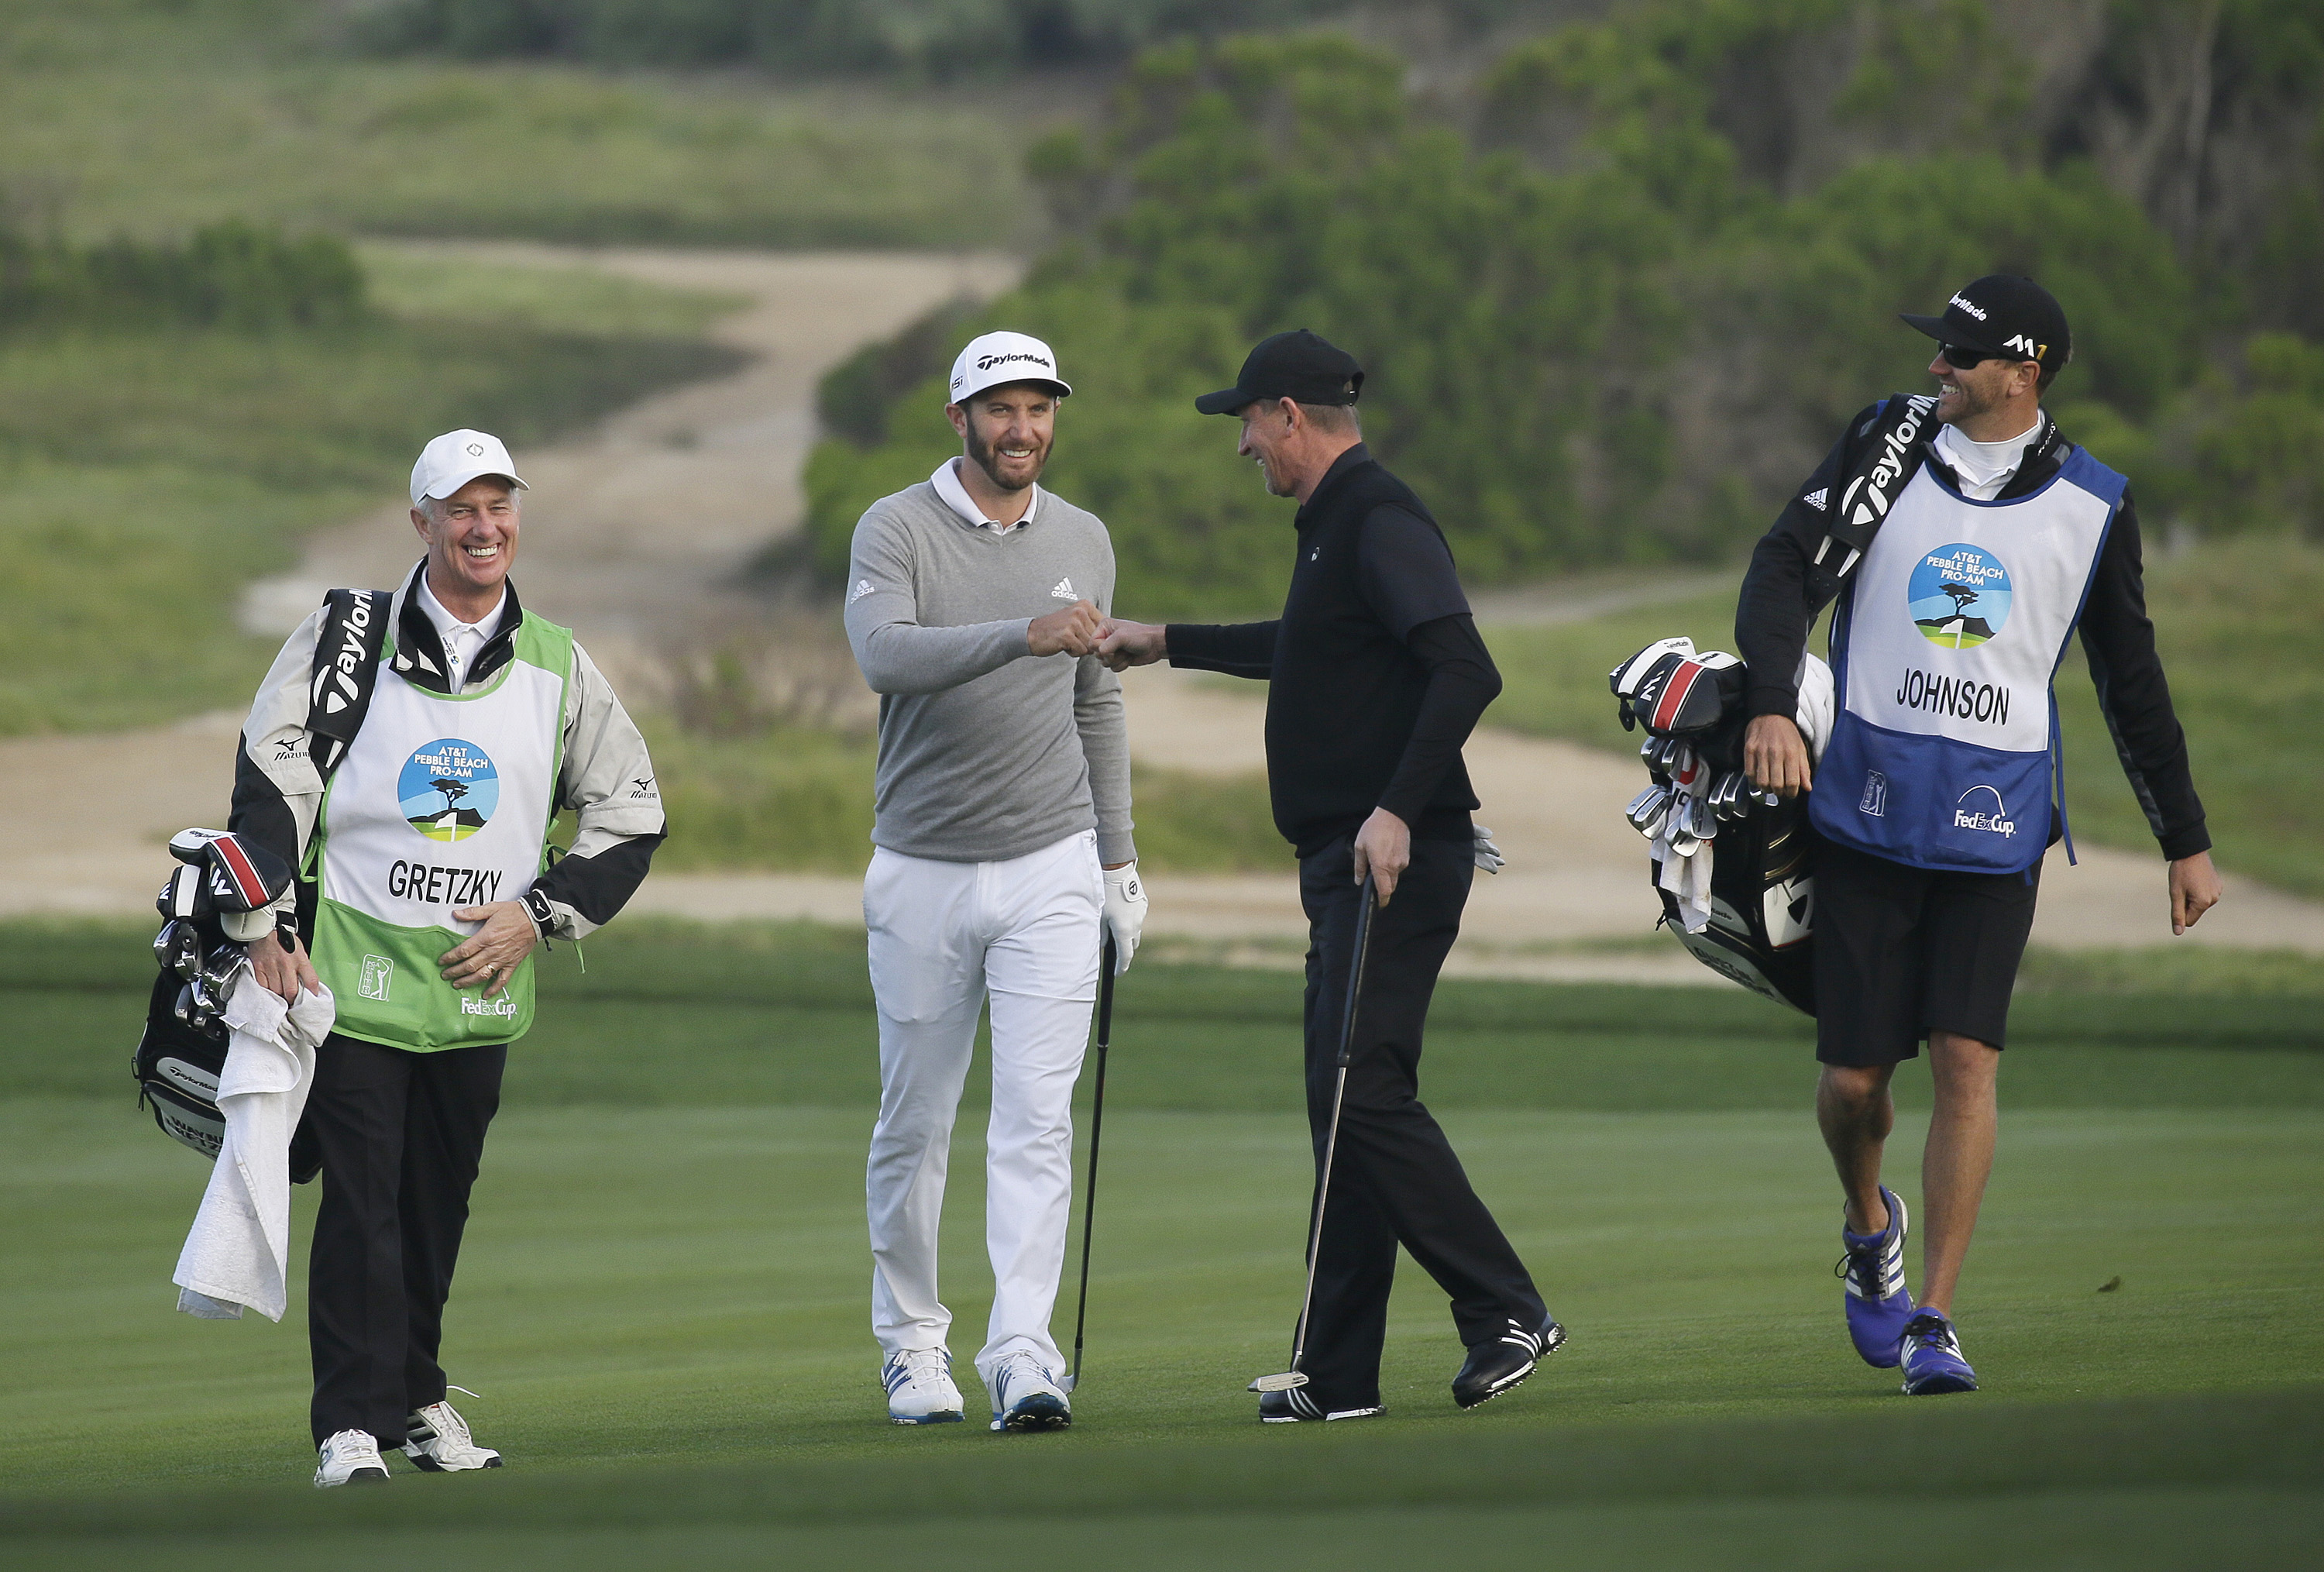 FILE - In a Friday, Feb. 12, 2016 file photo, Dustin Johnson, second from left, is greeted by playing partner Wayne Gretzky, second from right, after making an eagle chip on the 10th green of the Monterey Peninsula Country Club Shore Course during the sec